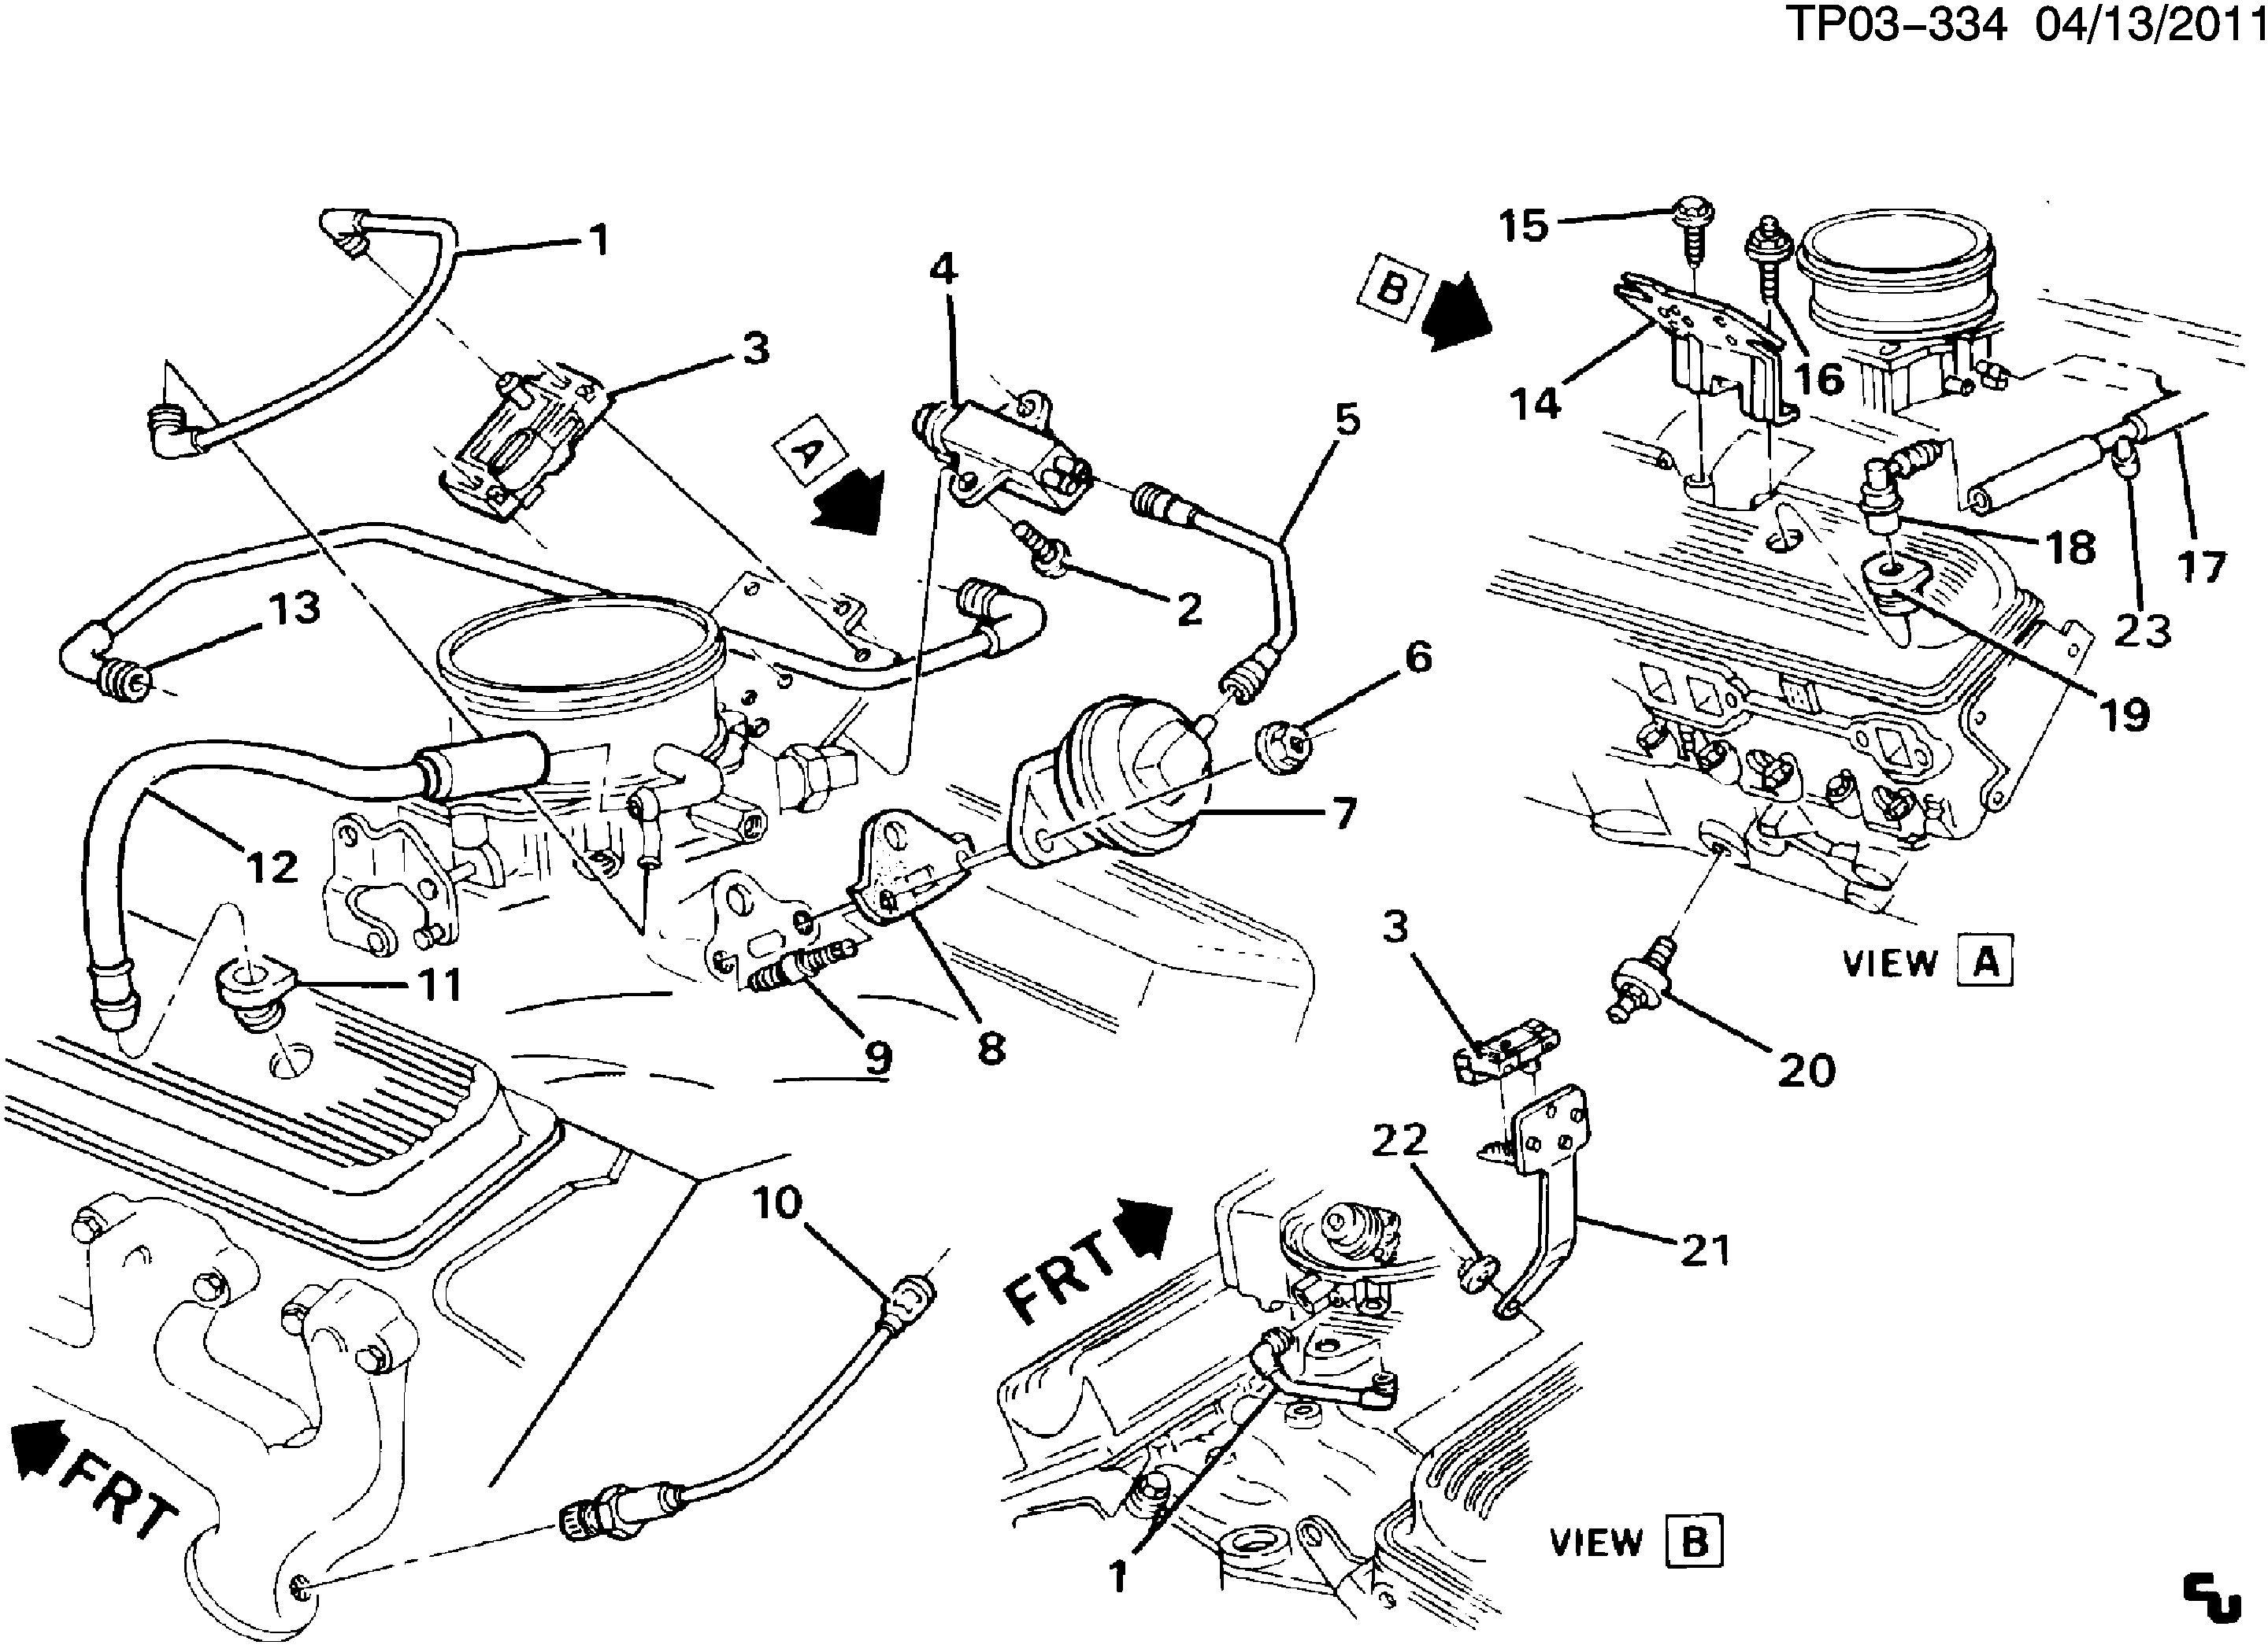 93 Mr2 Turbo Wiring Diagram